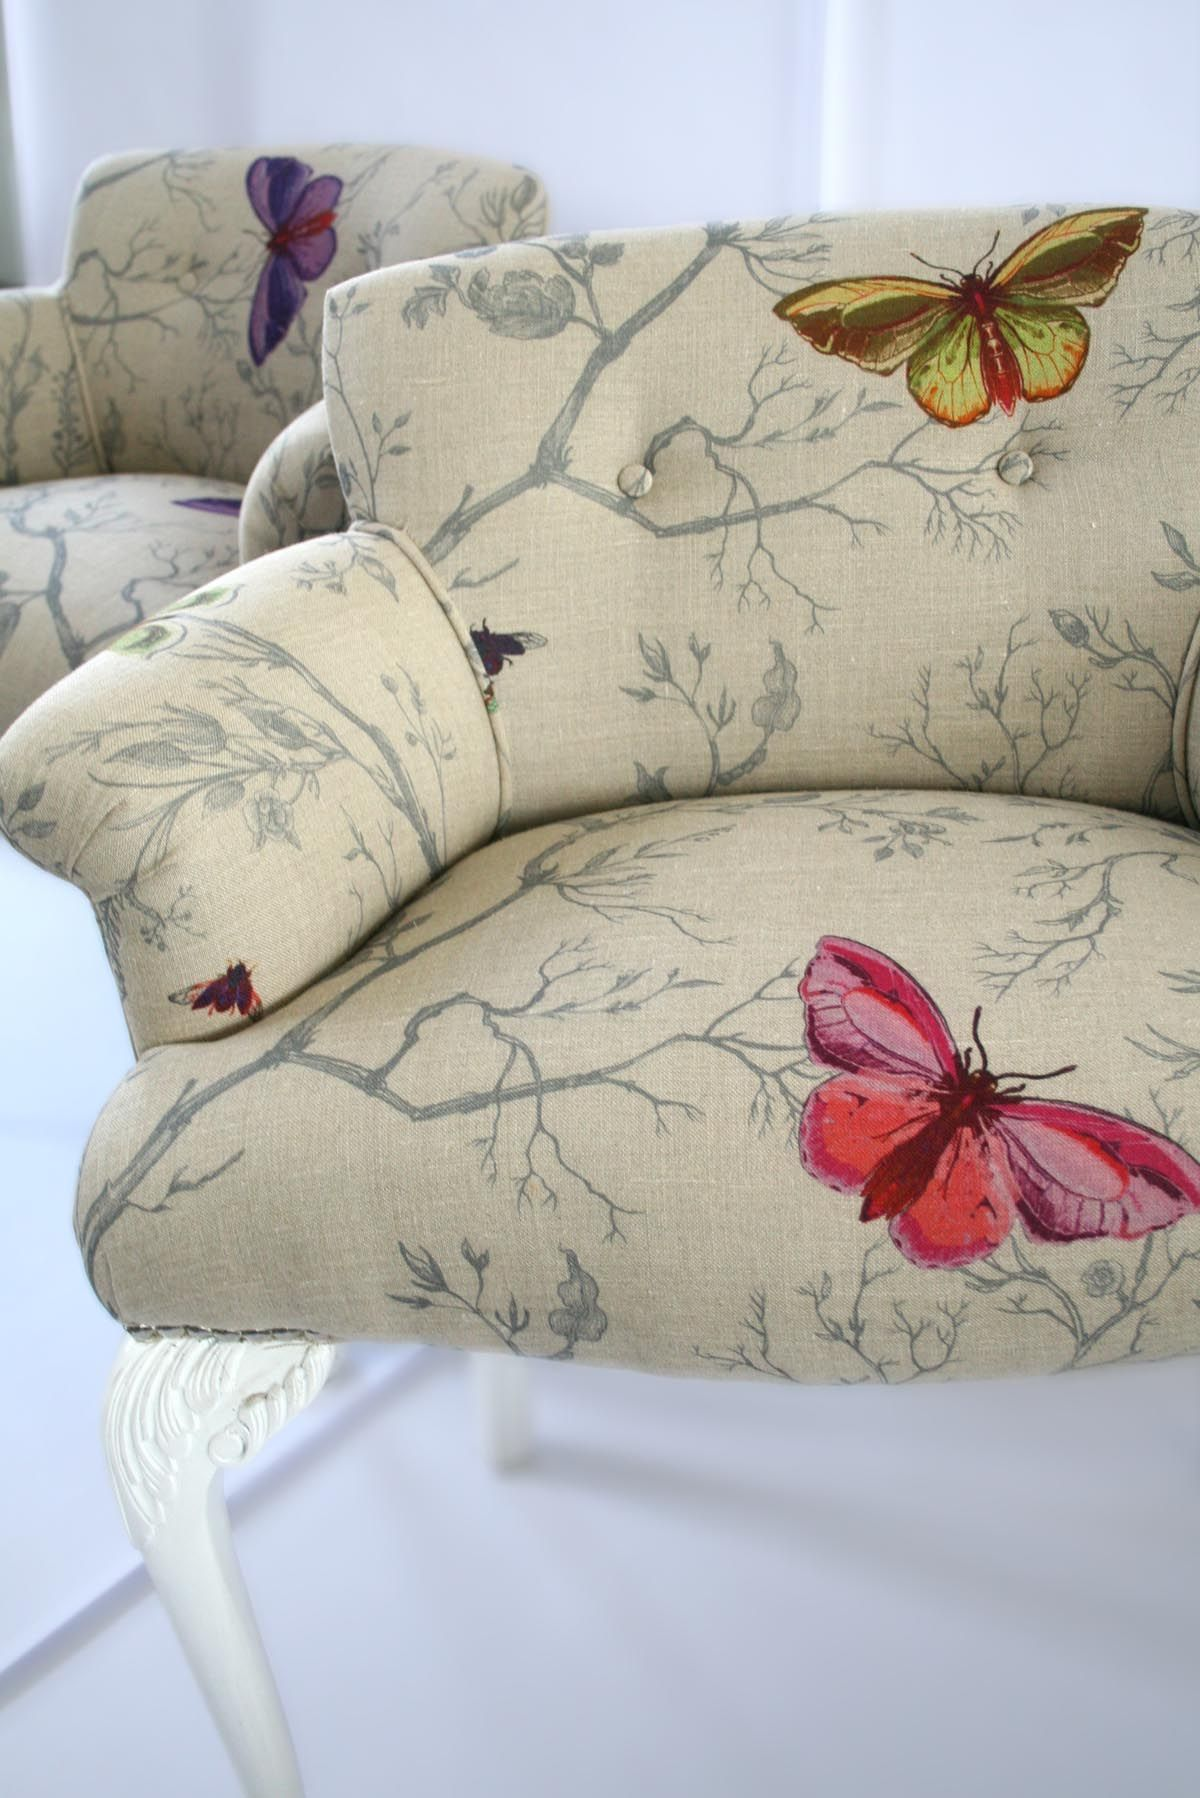 Timorous Beasties Fabric   Butterflies Interesting Way To Patch Old  Furniture Too. Butterflies As Raised Embroidery.